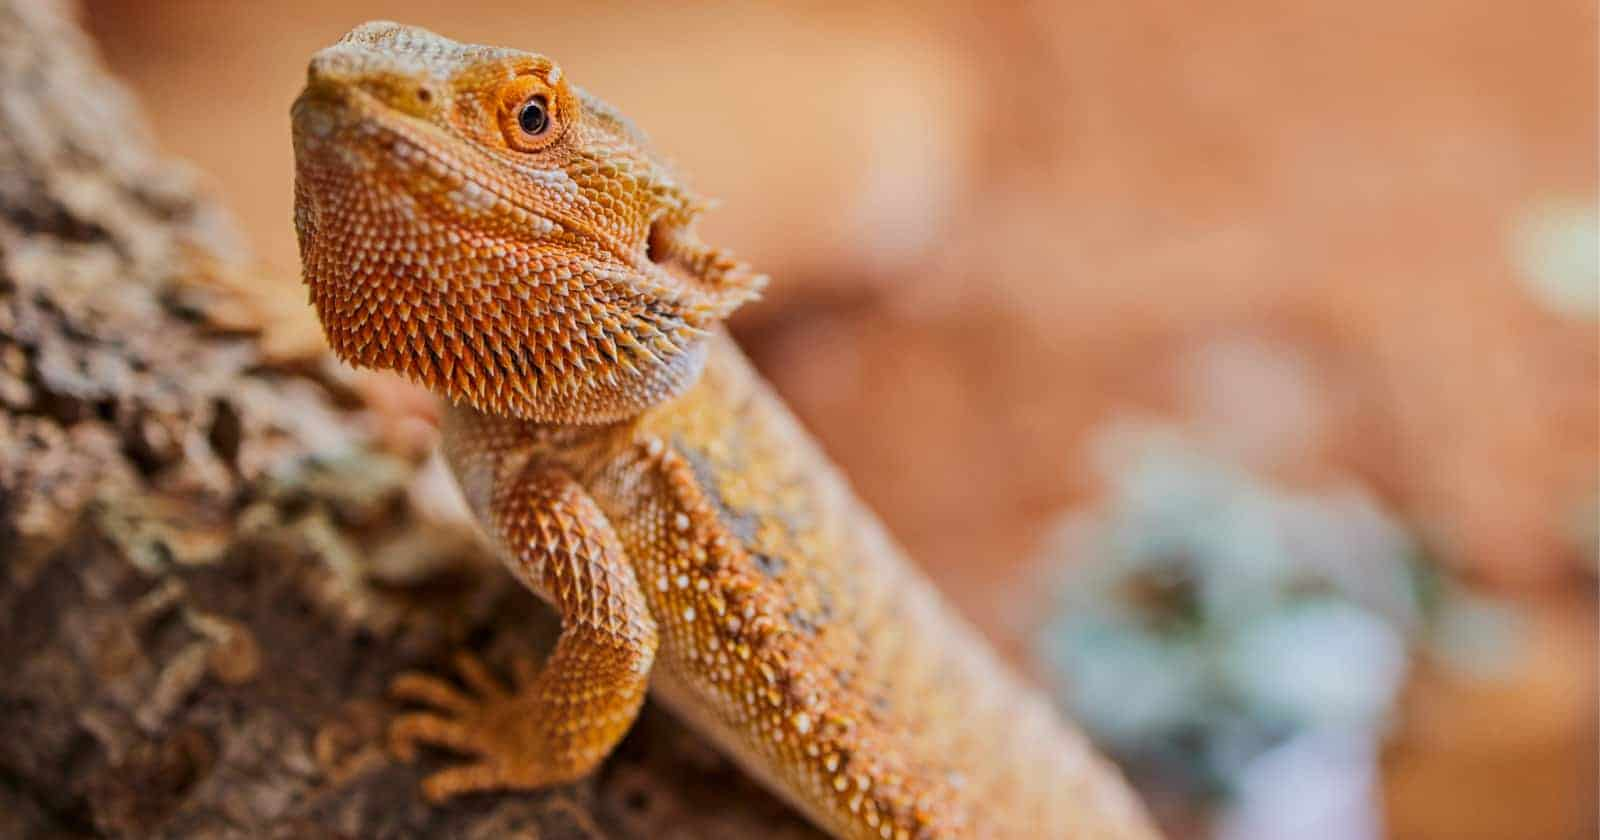 Looking for some cute bearded dragon names? Read on for 100 that we love, with 50 each for males and females!